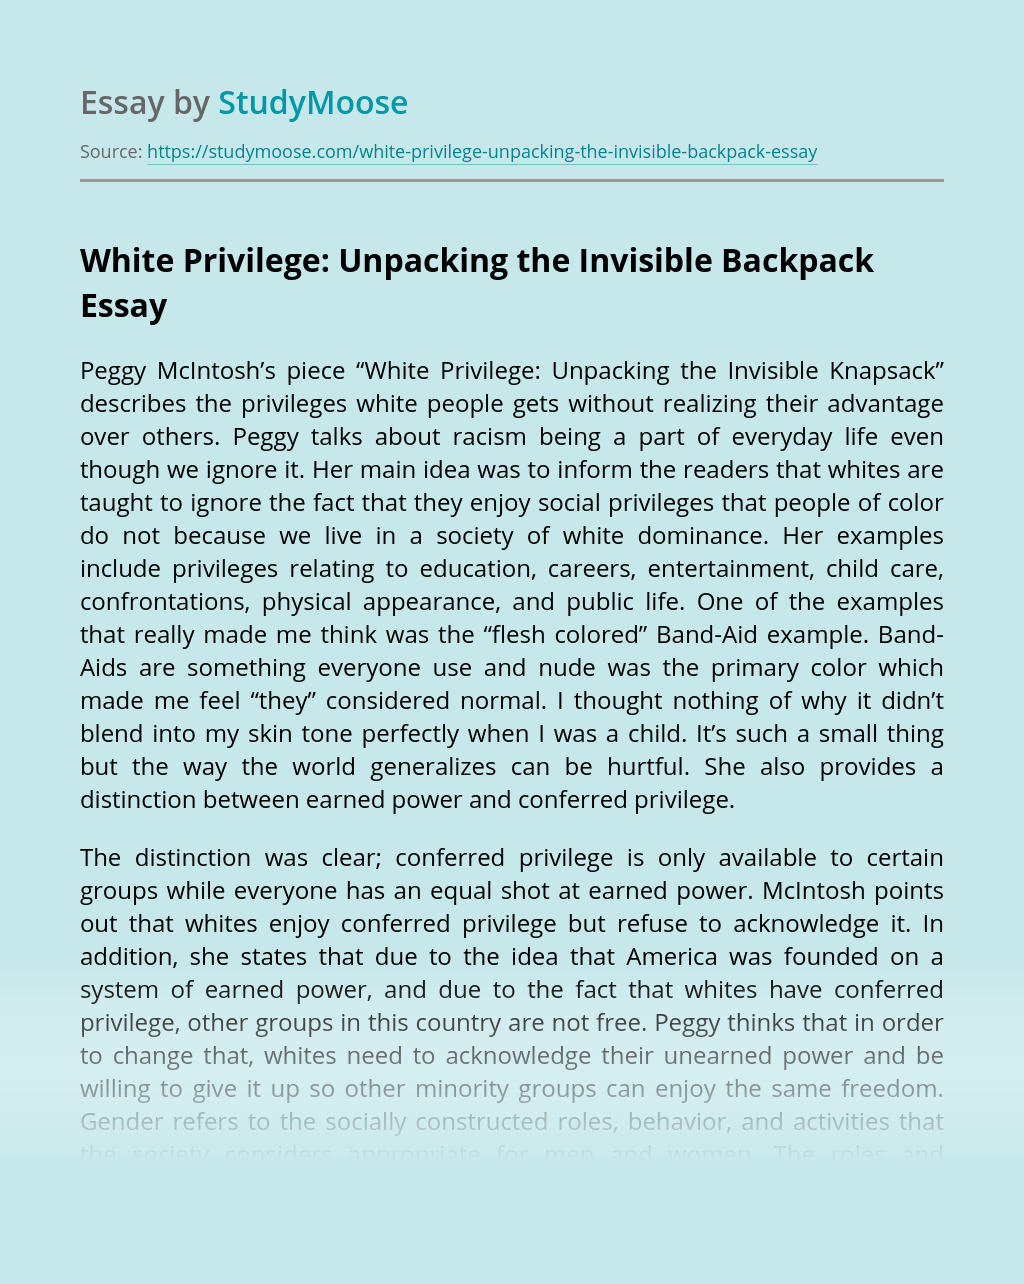 White Privilege: Unpacking the Invisible Backpack